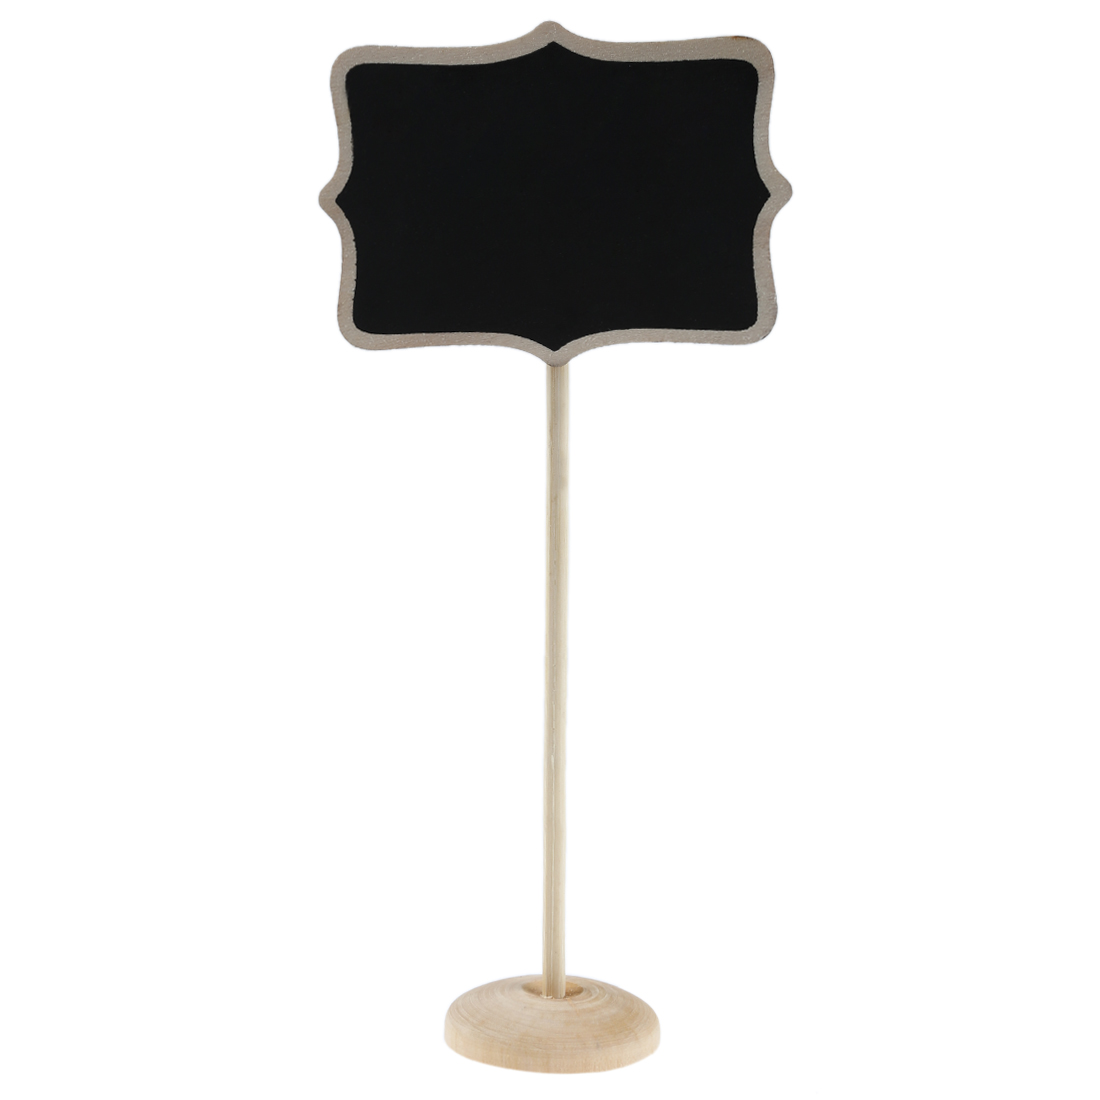 SOSW-Mini Blackboard Chalkboard Wordpad Message Board Holder Clip (Set Of 10)